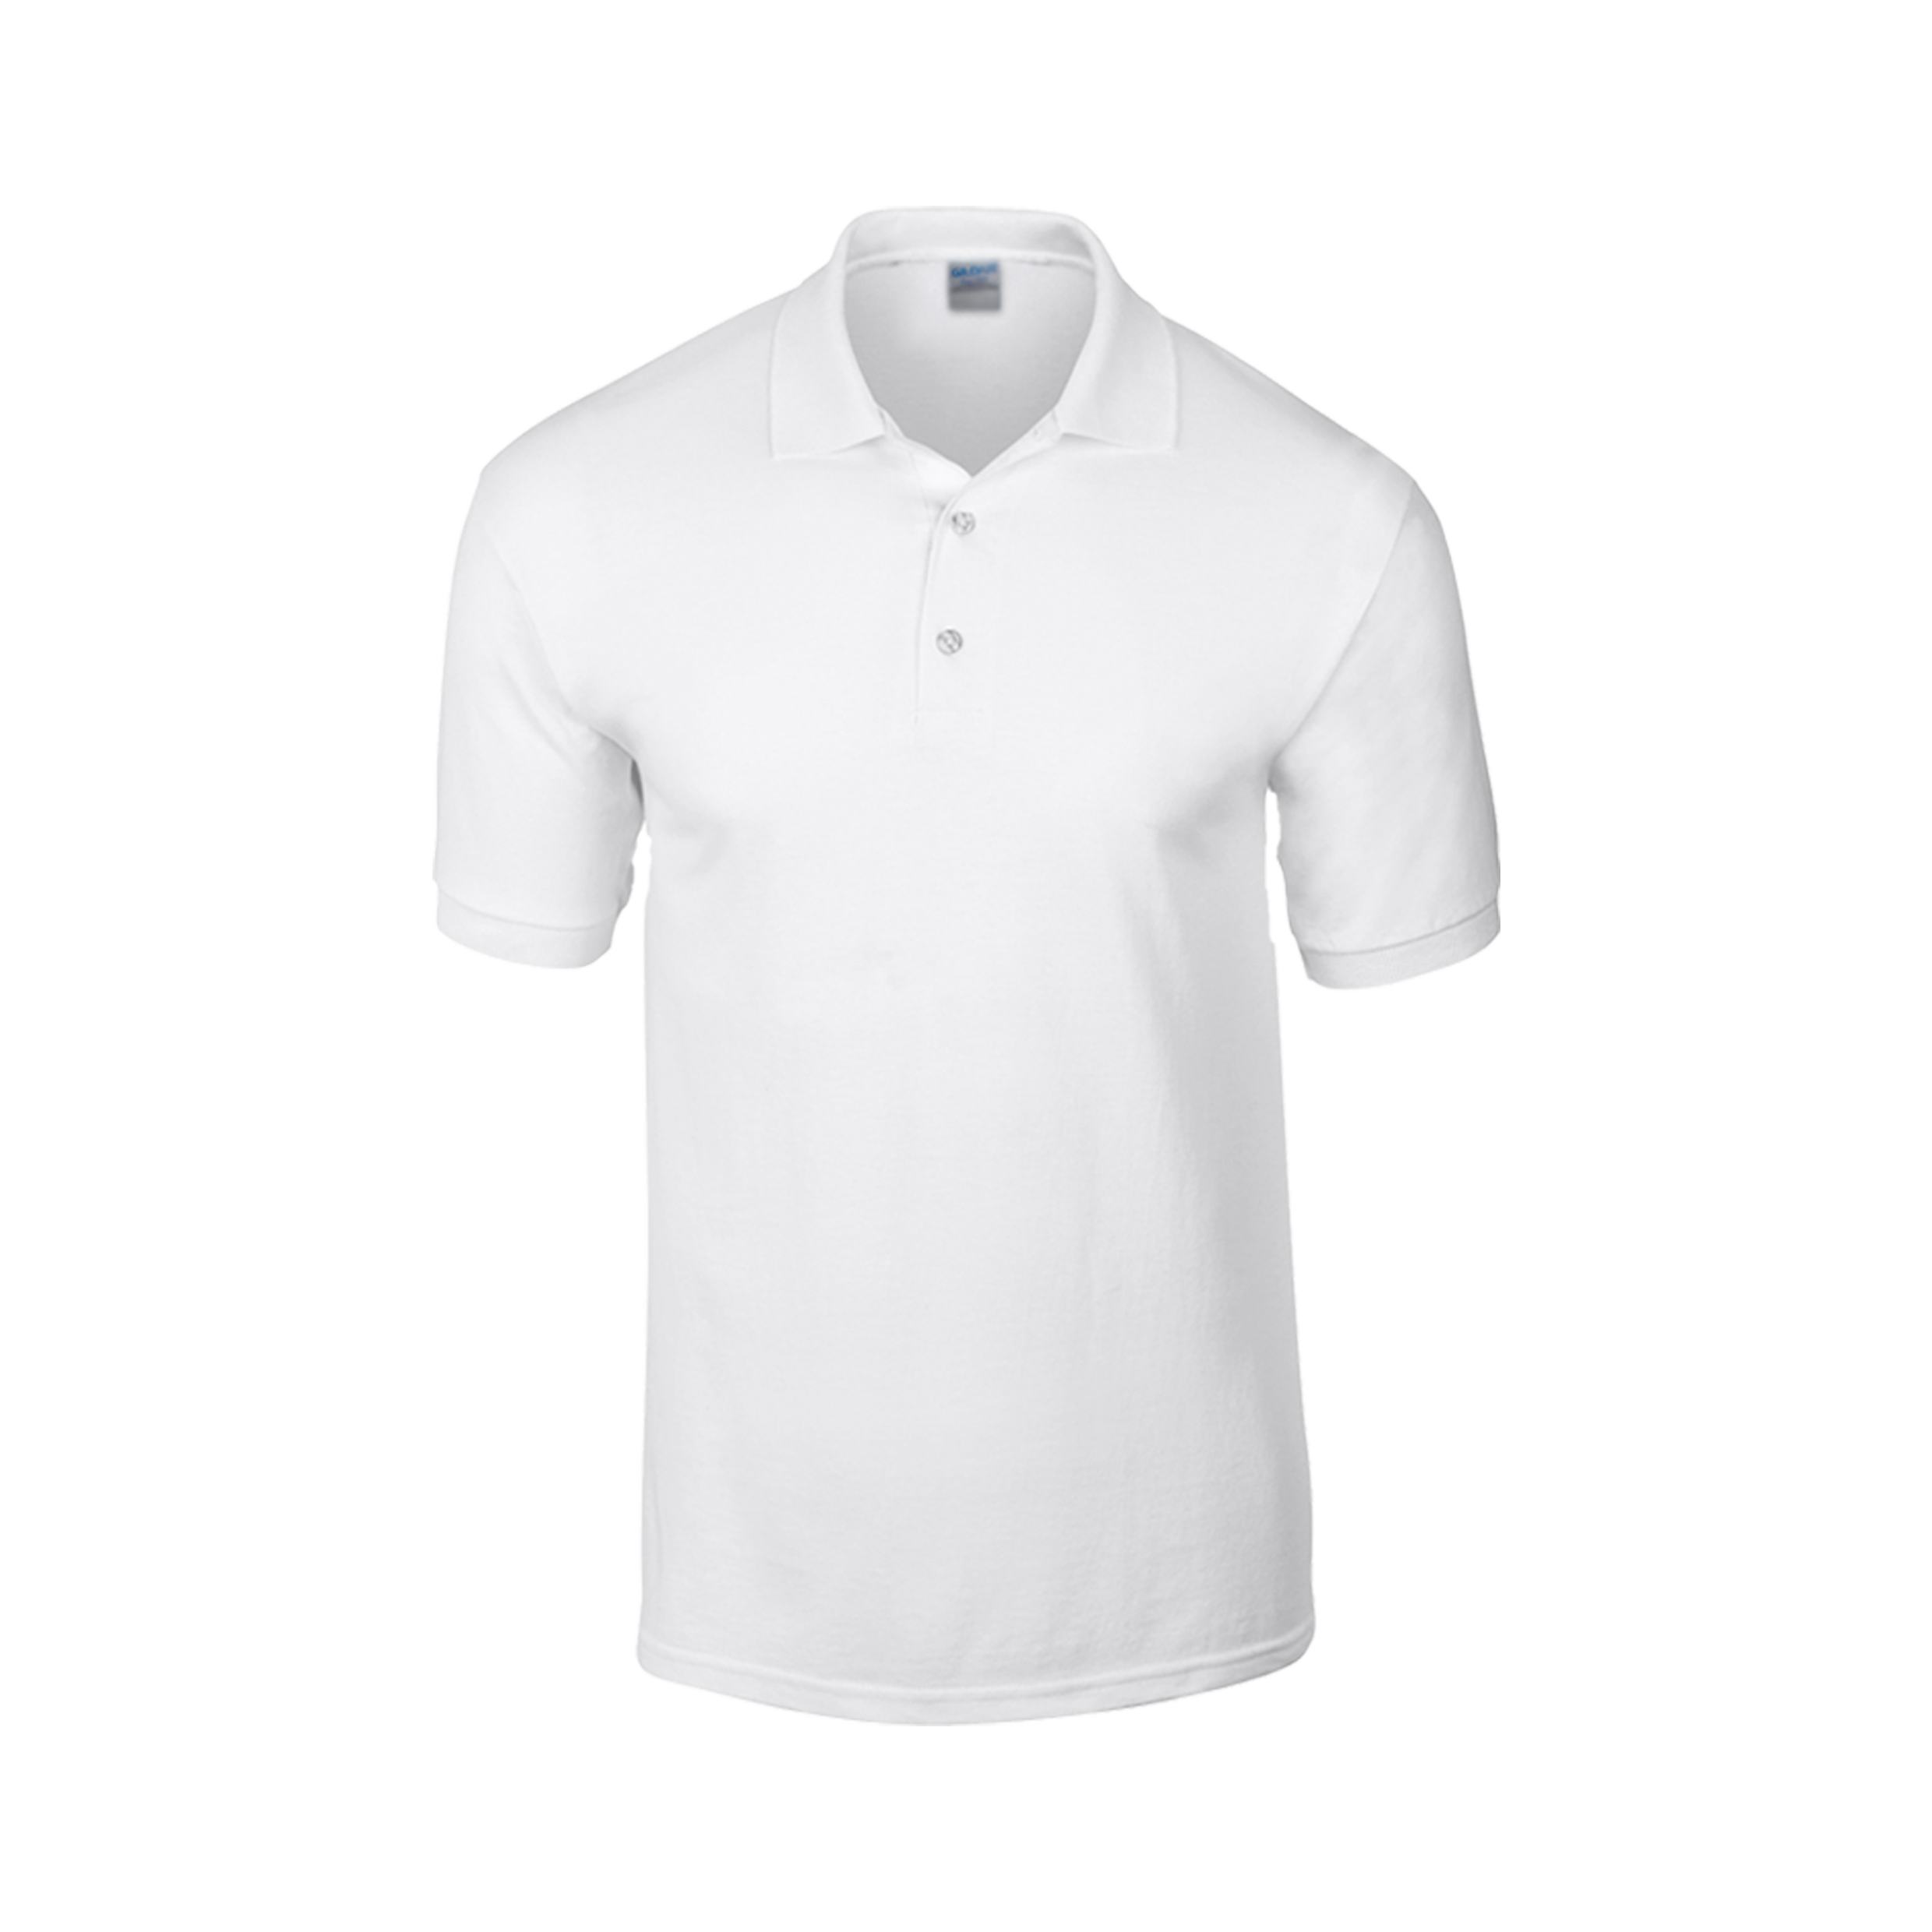 White Polo T Shirt Front And Back Png - Amyhj